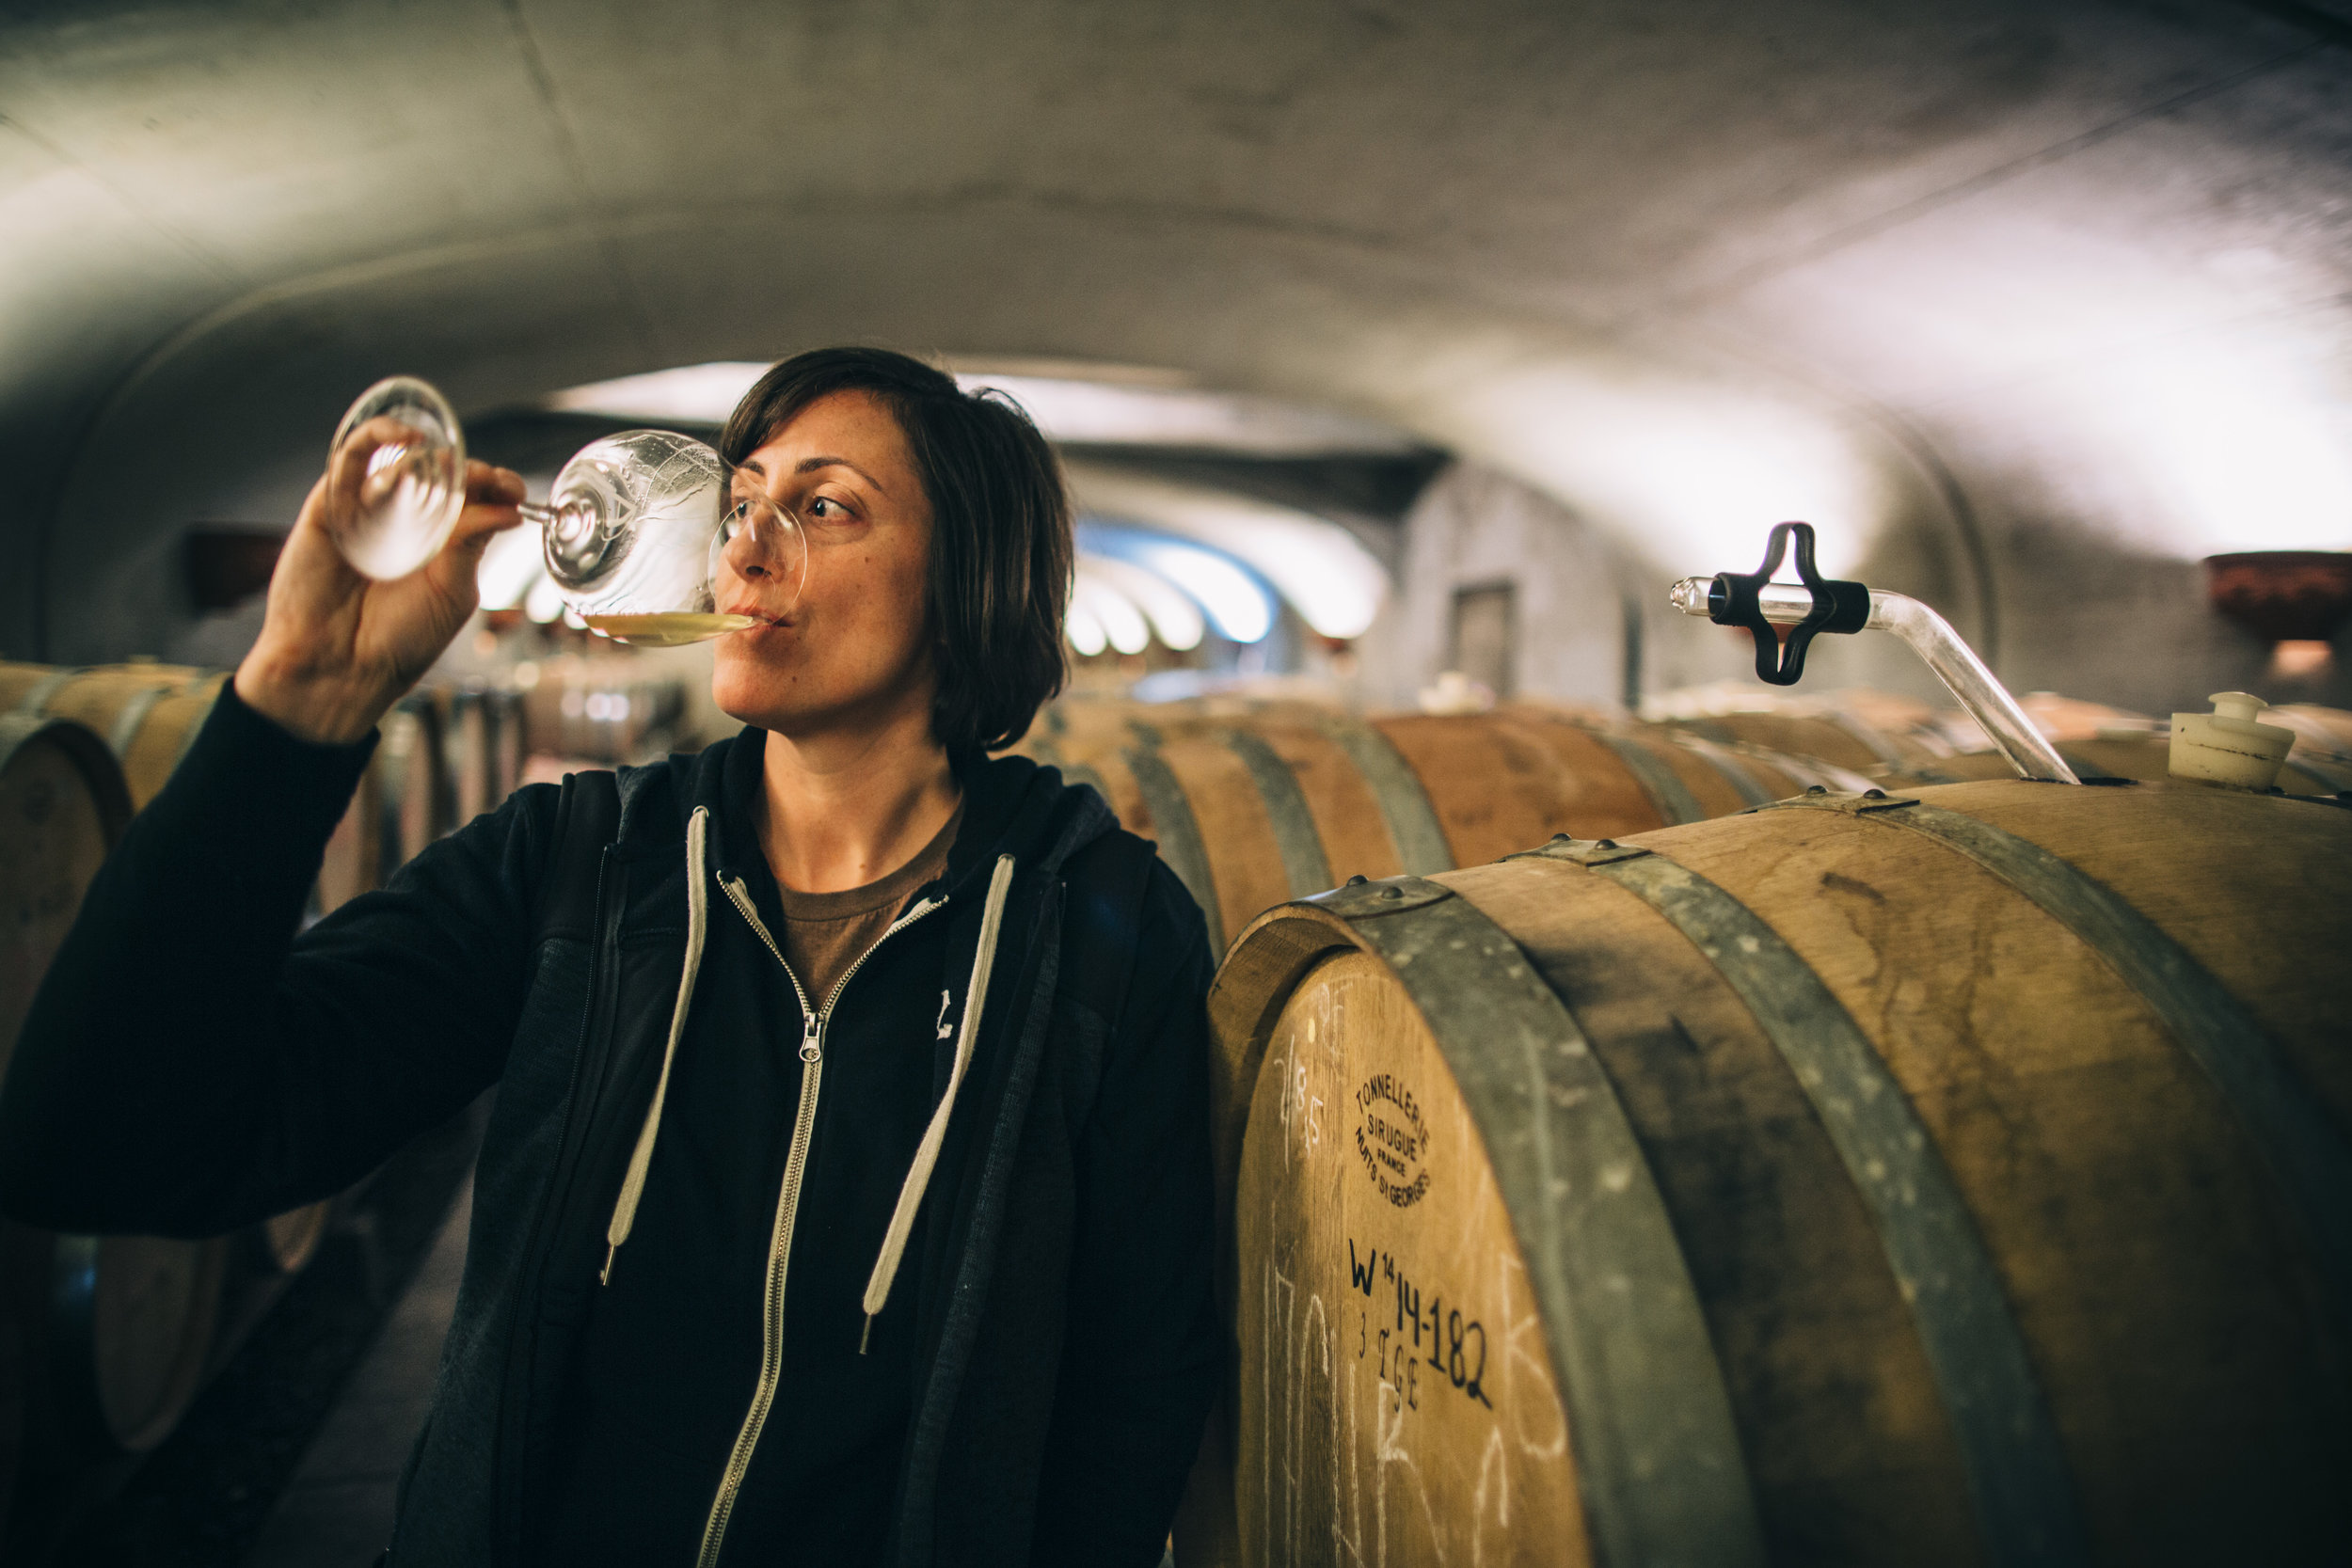 Gina Hennen, Winemaker at Adelsheim, Tastes Wines in Barrel Room